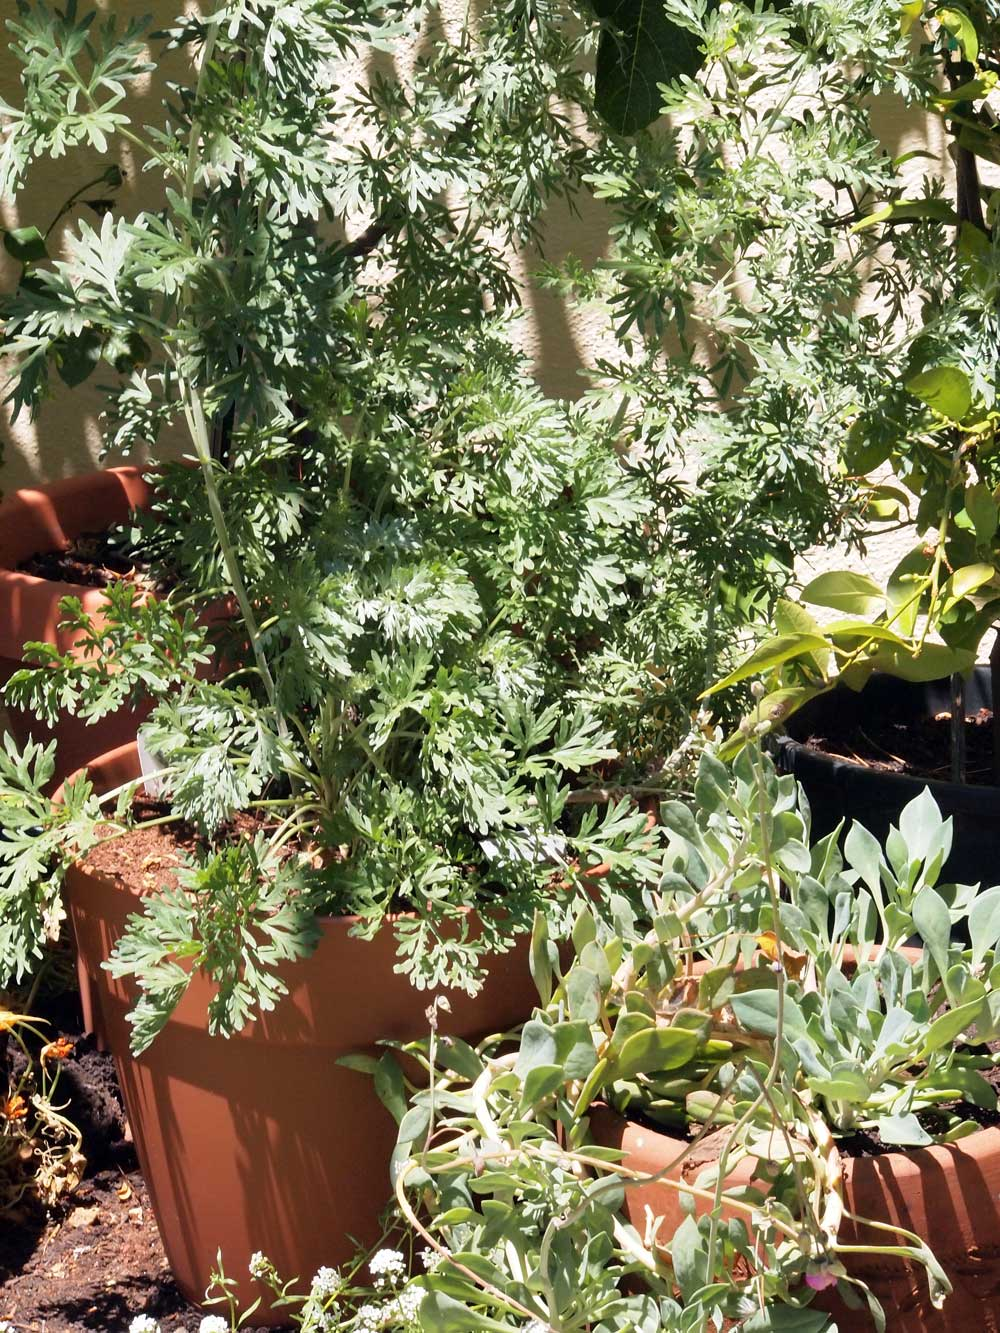 South-facing wall. Front l-r: <em>Artemisia absinthium</em> (wormwood), <em>Calendrinia spectabilis</em>. Back l-r: White Genoa Fig, Persian Lime.